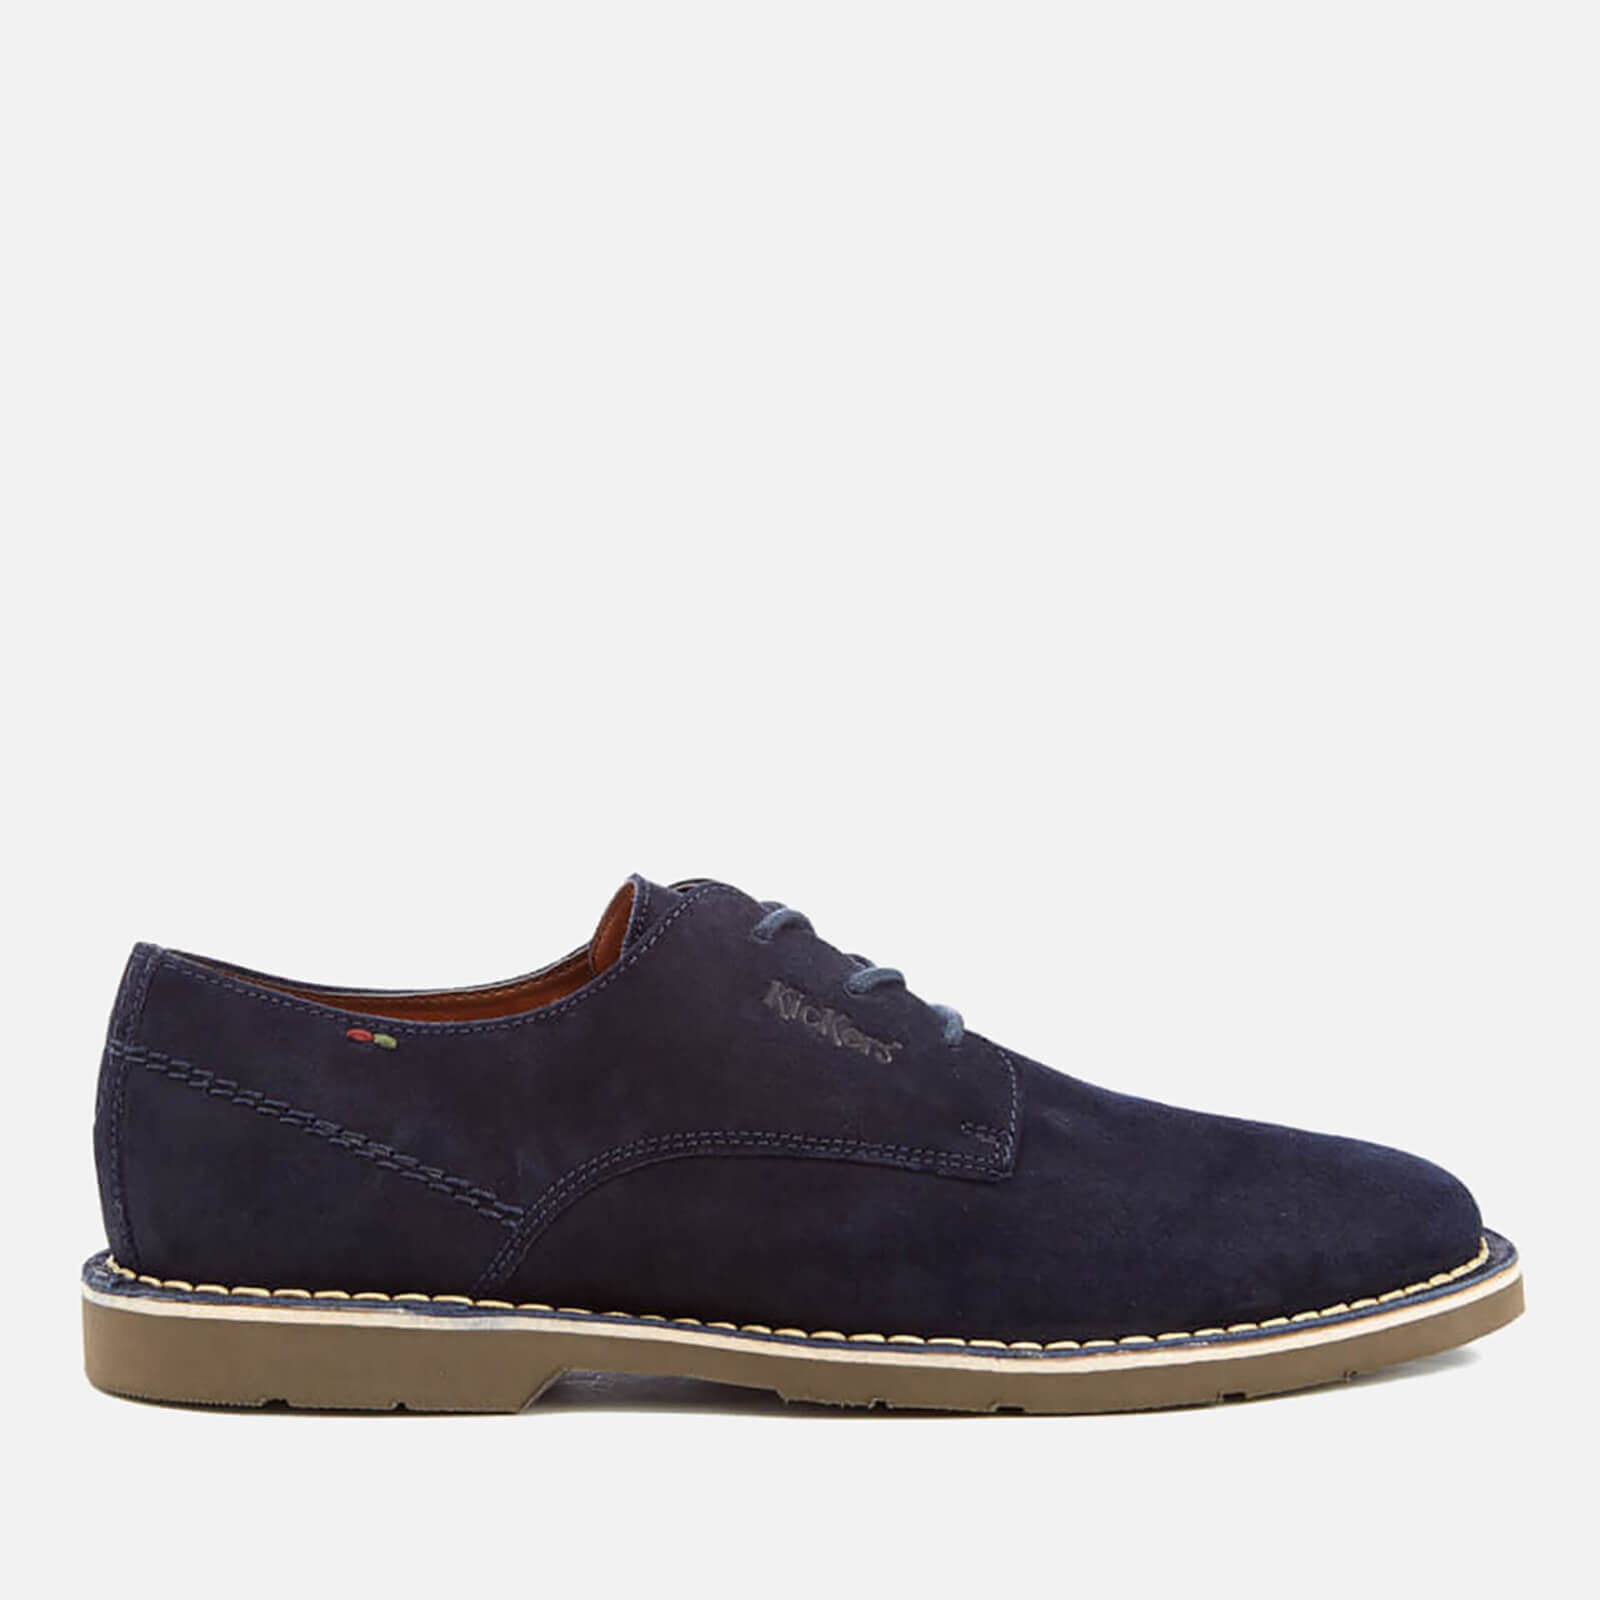 Kickers Men's Kanning Lace Up Shoes Dark Blue